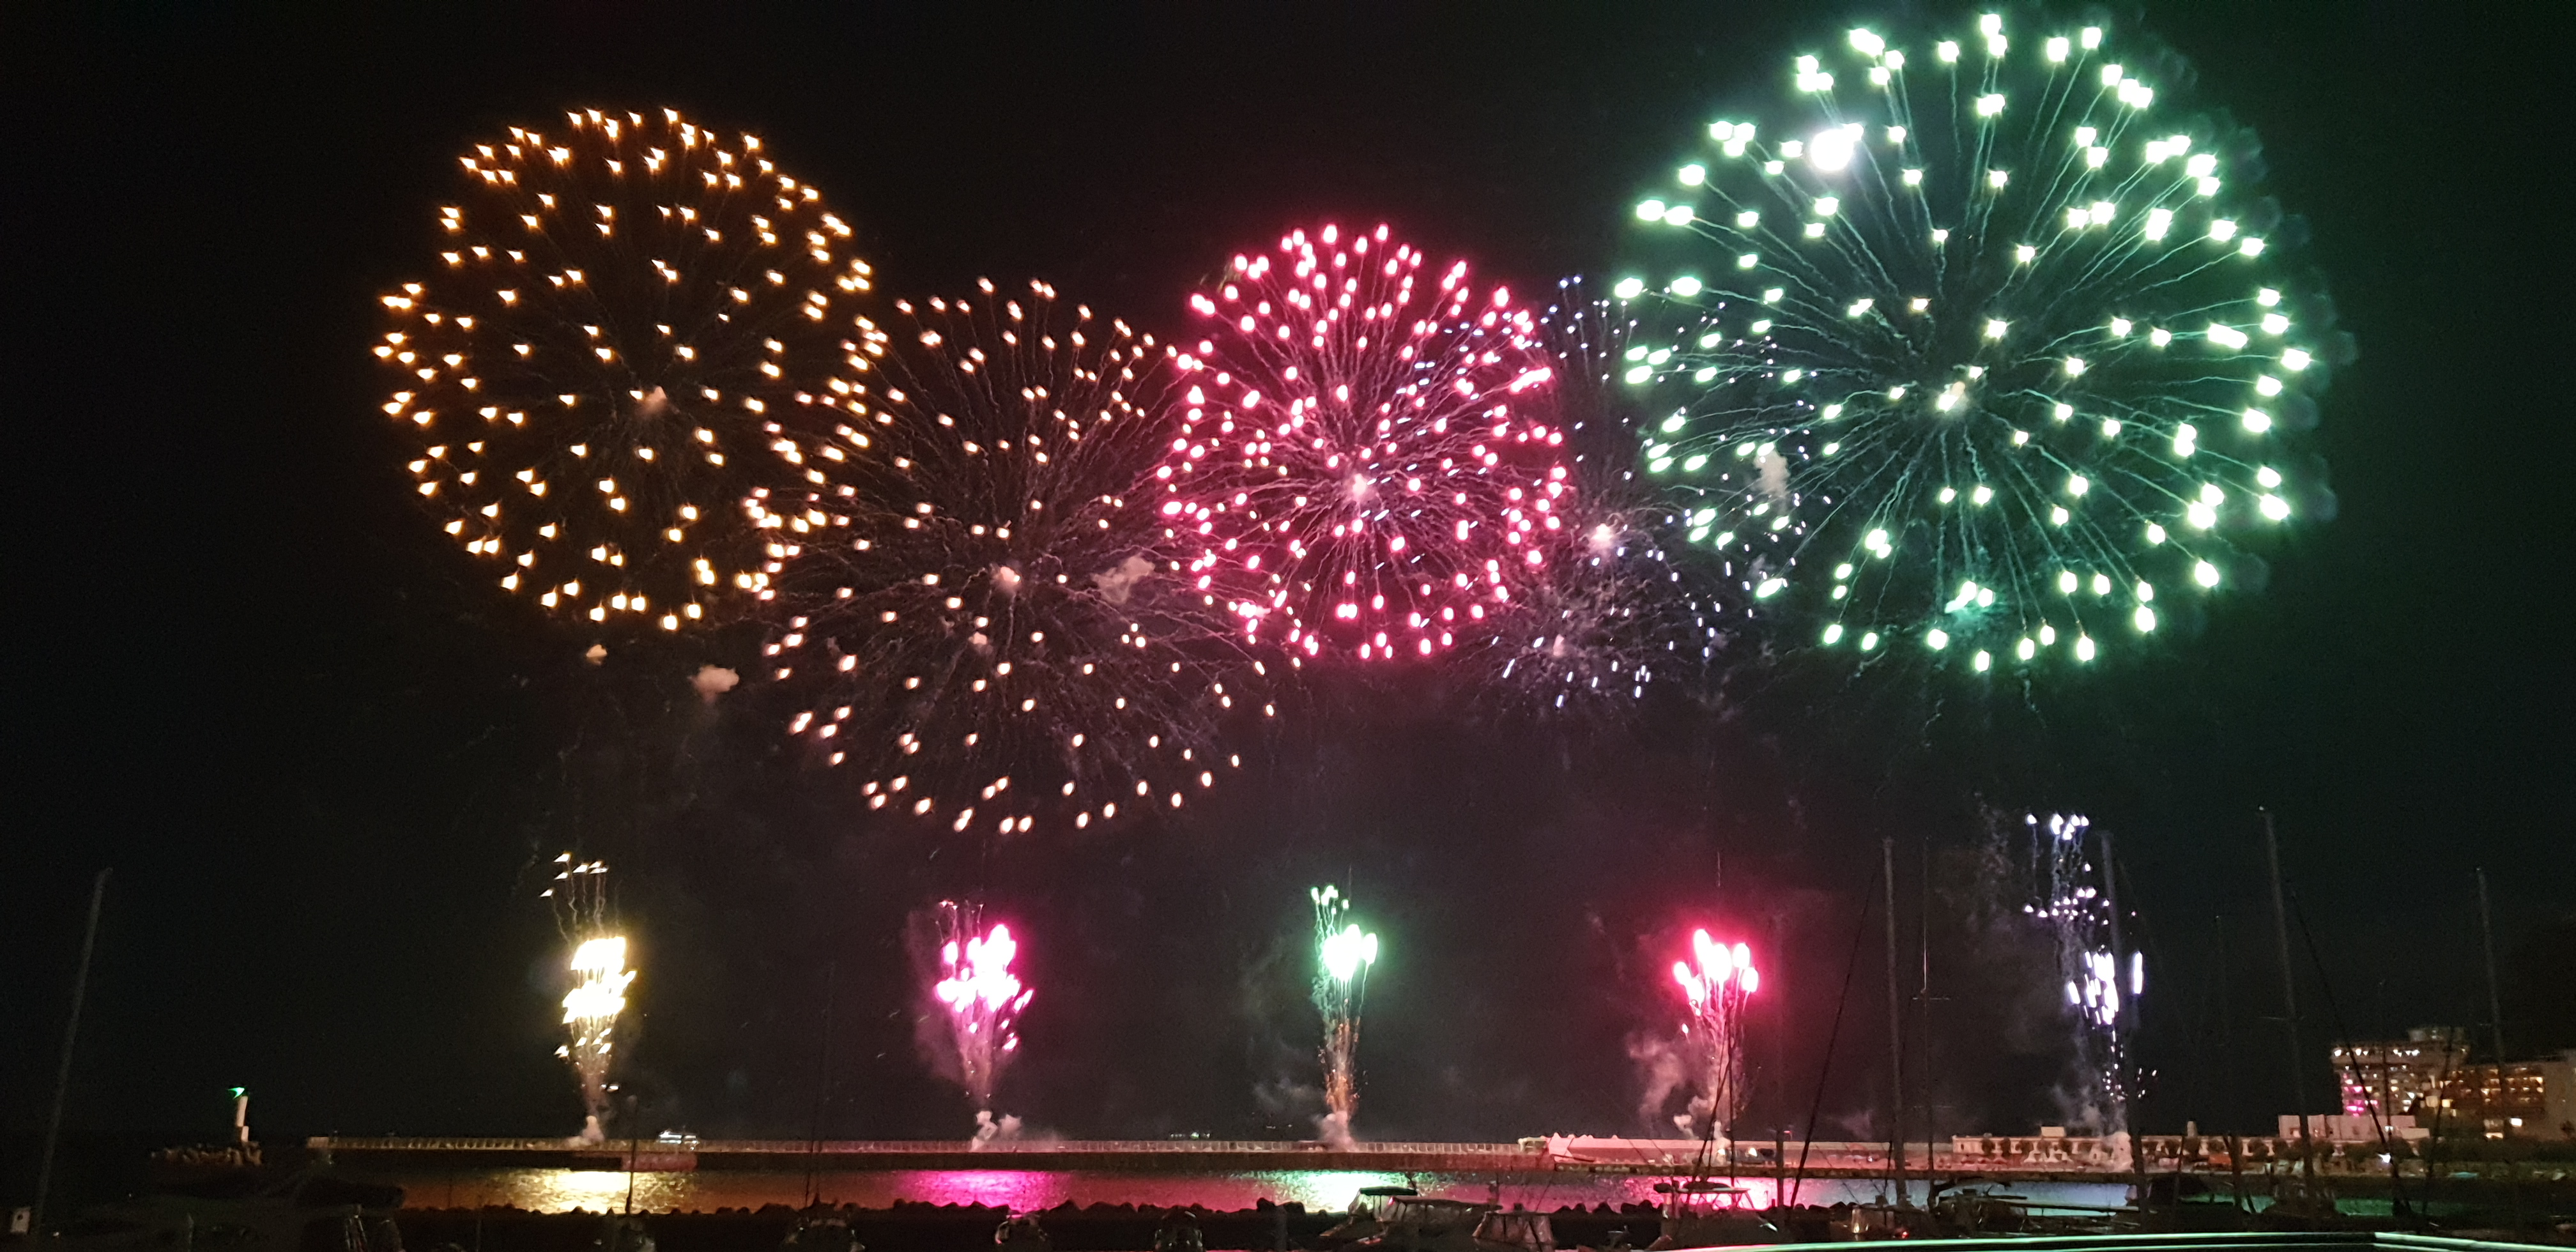 Fireworks with the sea as the background. Awesome!!